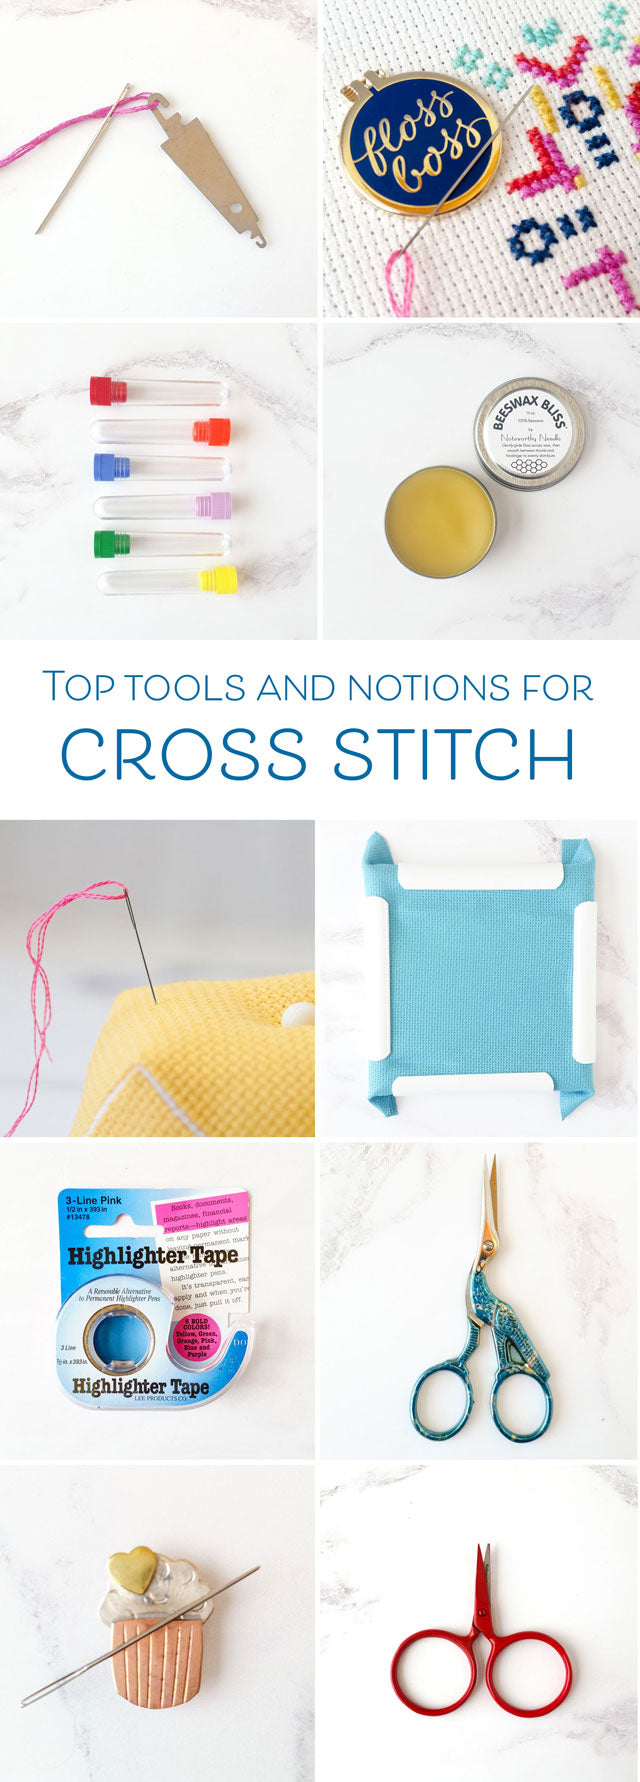 Top tools and notions for cross stitch and embroidery